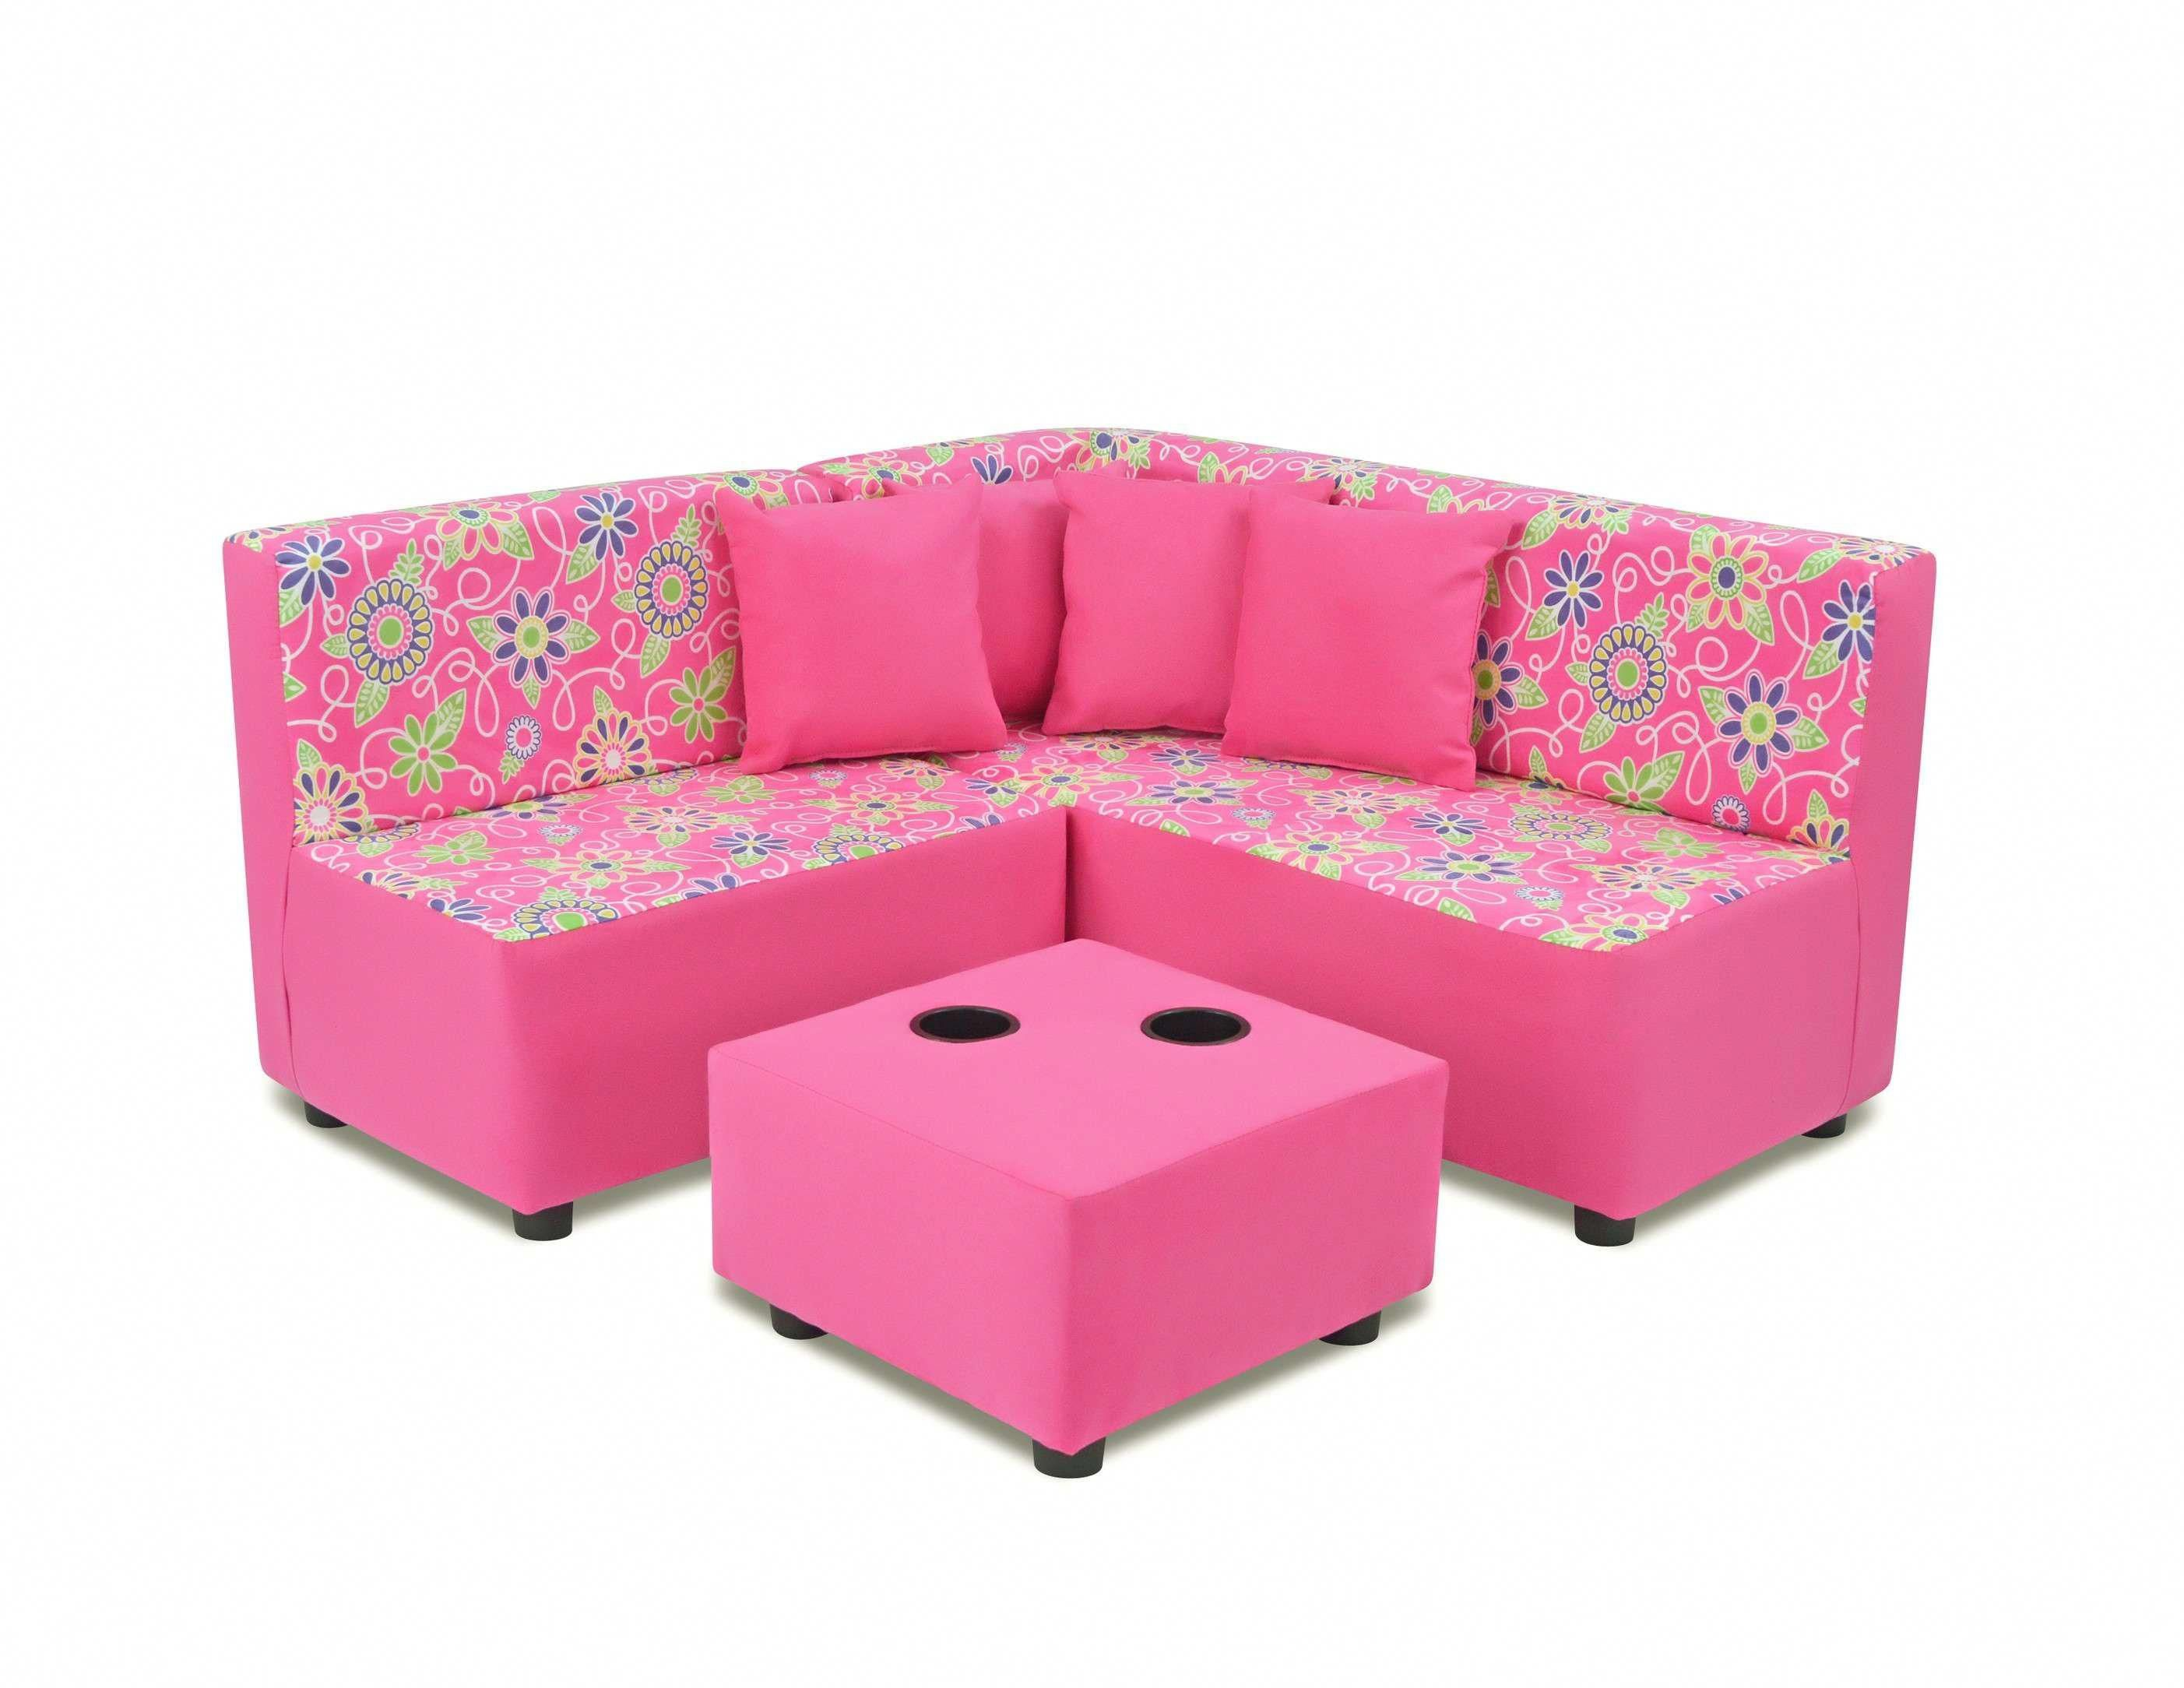 Shipping Furniture From India To Usa Cityfurniture Kids Sofa